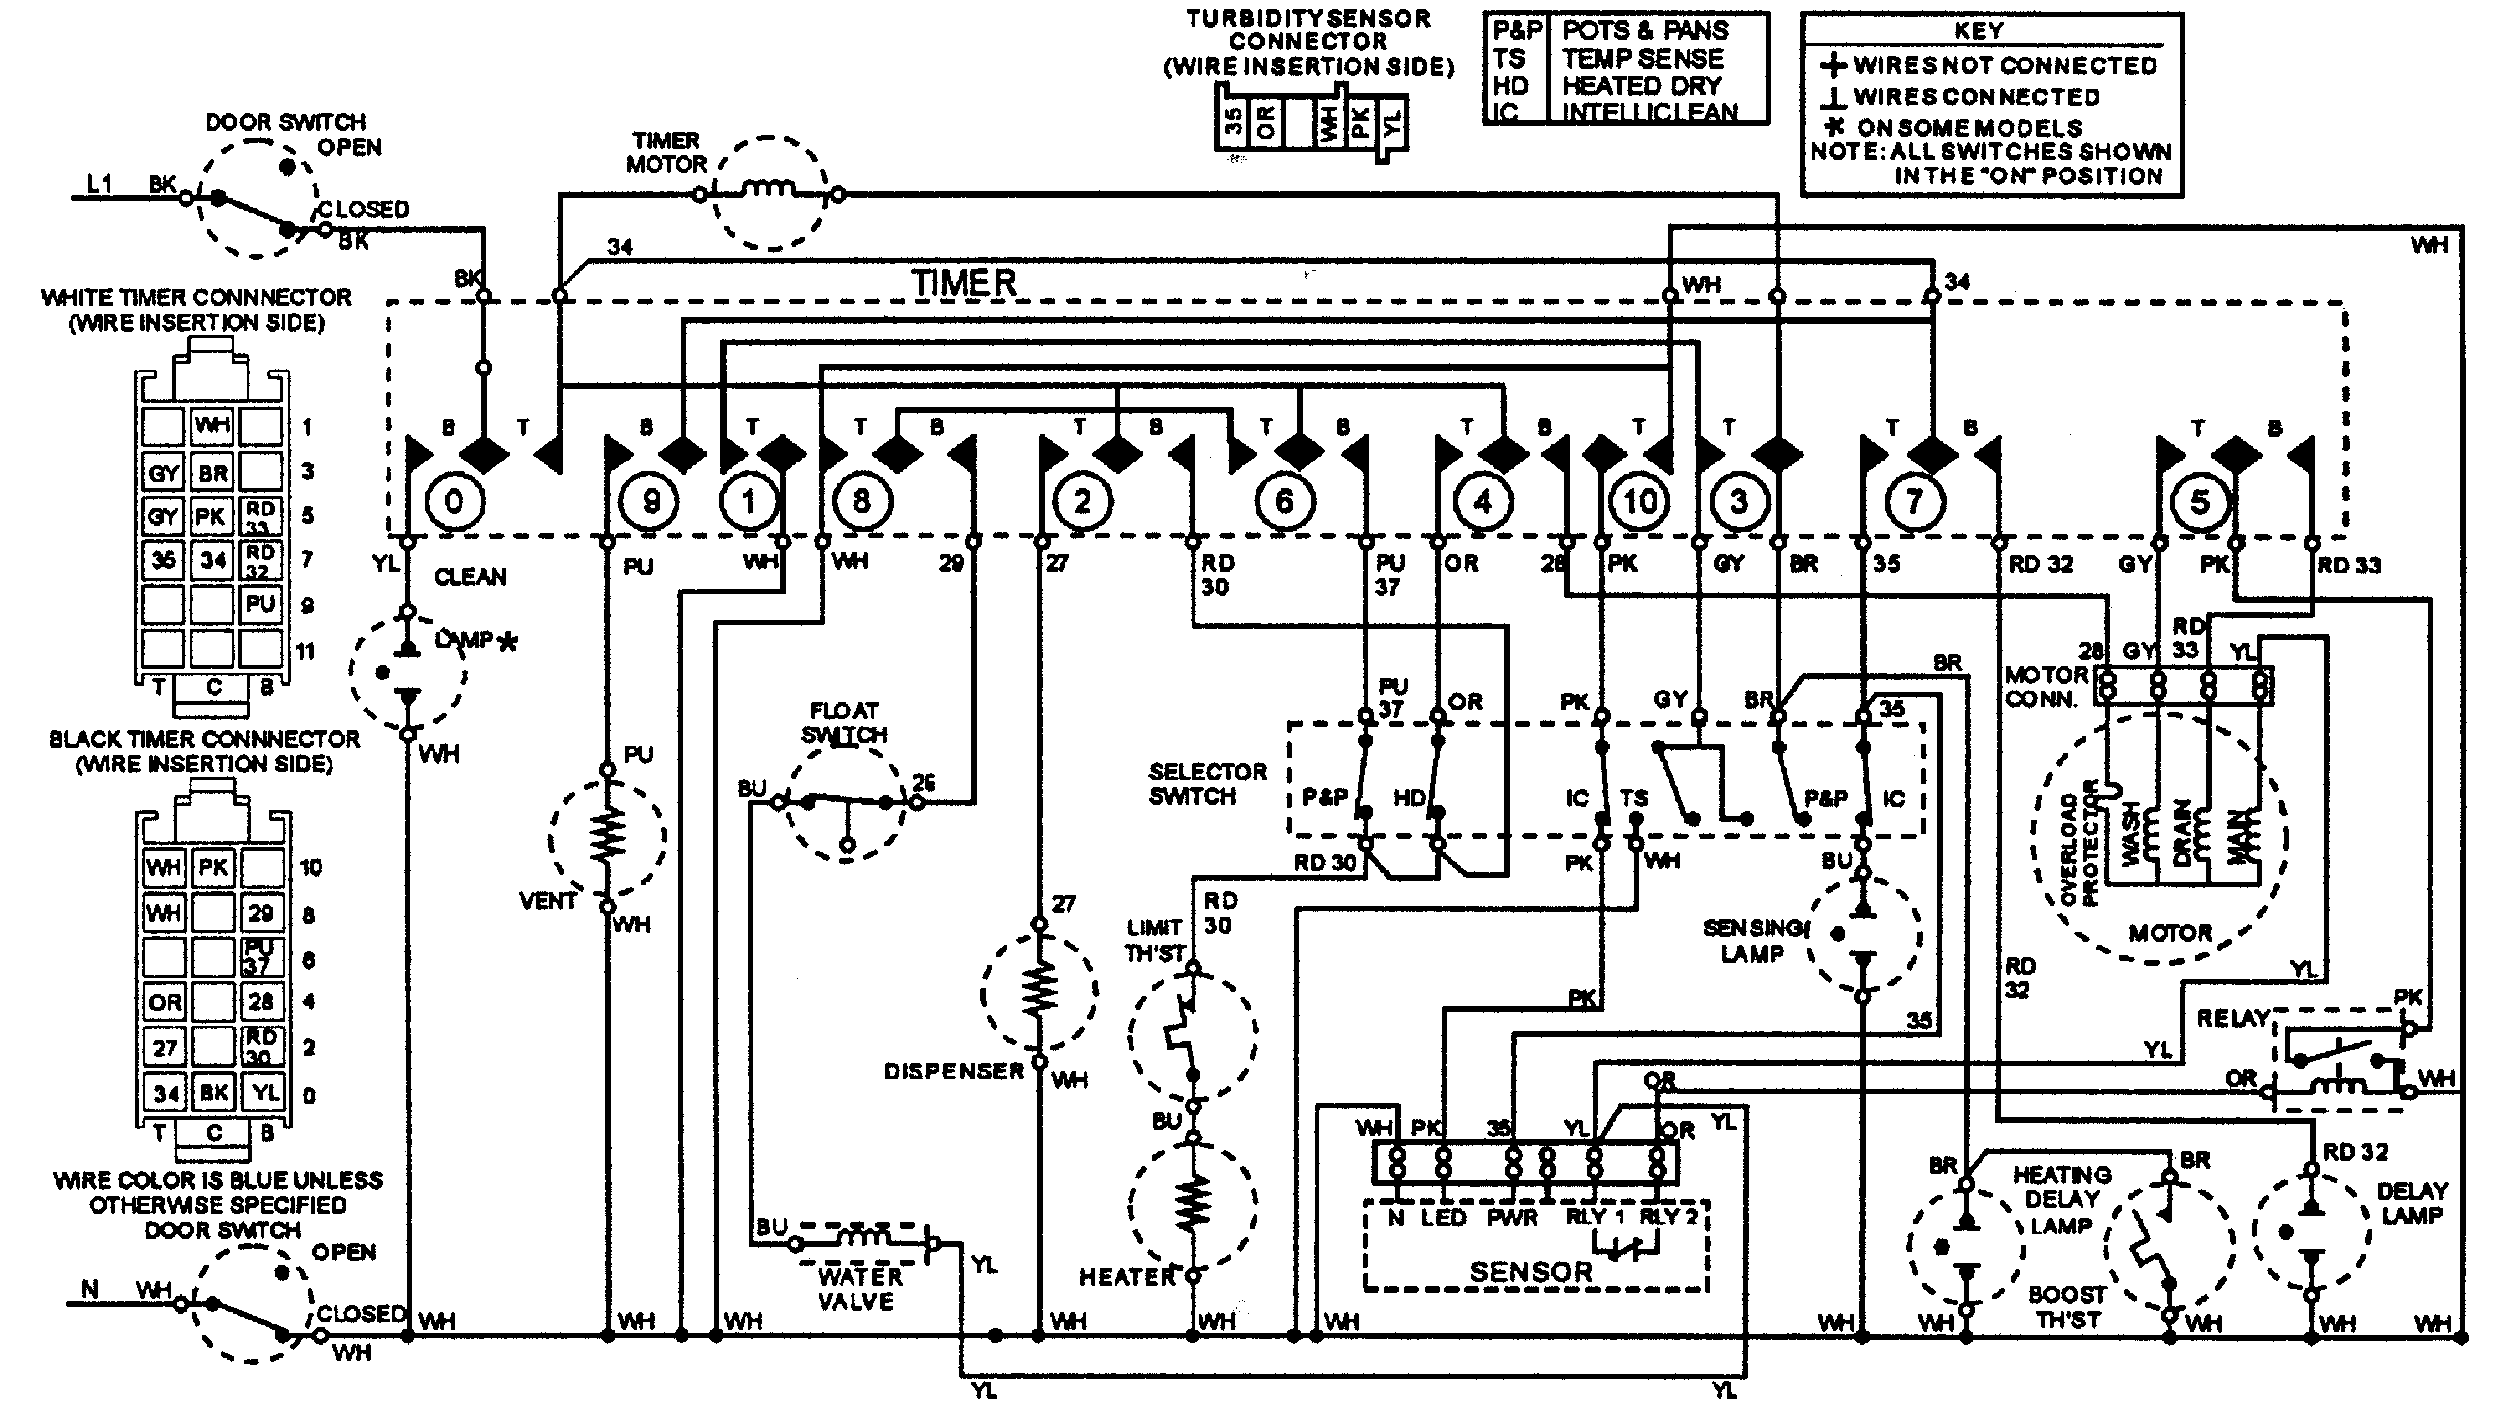 Whirlpool Wiring Schematics -Honda Pilot Engine Diagram Transmission |  Begeboy Wiring Diagram Source | Whirlpool Wiring Schematics |  | Begeboy Wiring Diagram Source